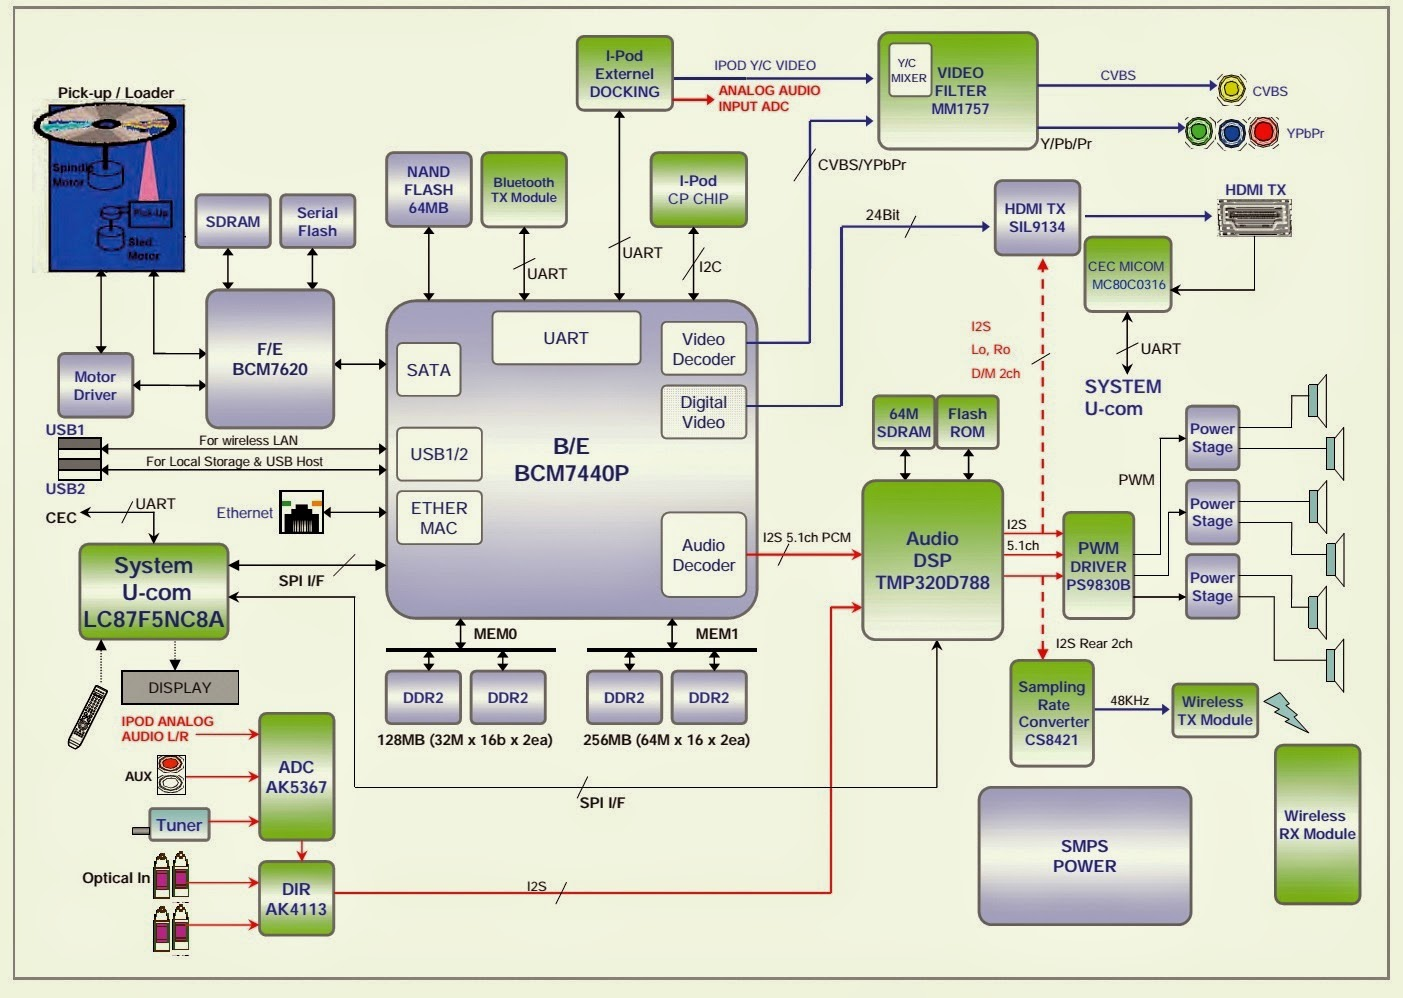 ELECTRONIC EQUIPMENT REPAIR CENTRE : SAMSUNG HTBD1255 POWER SUPPLY CIRCUIT AND BLOCK DIAGRAM